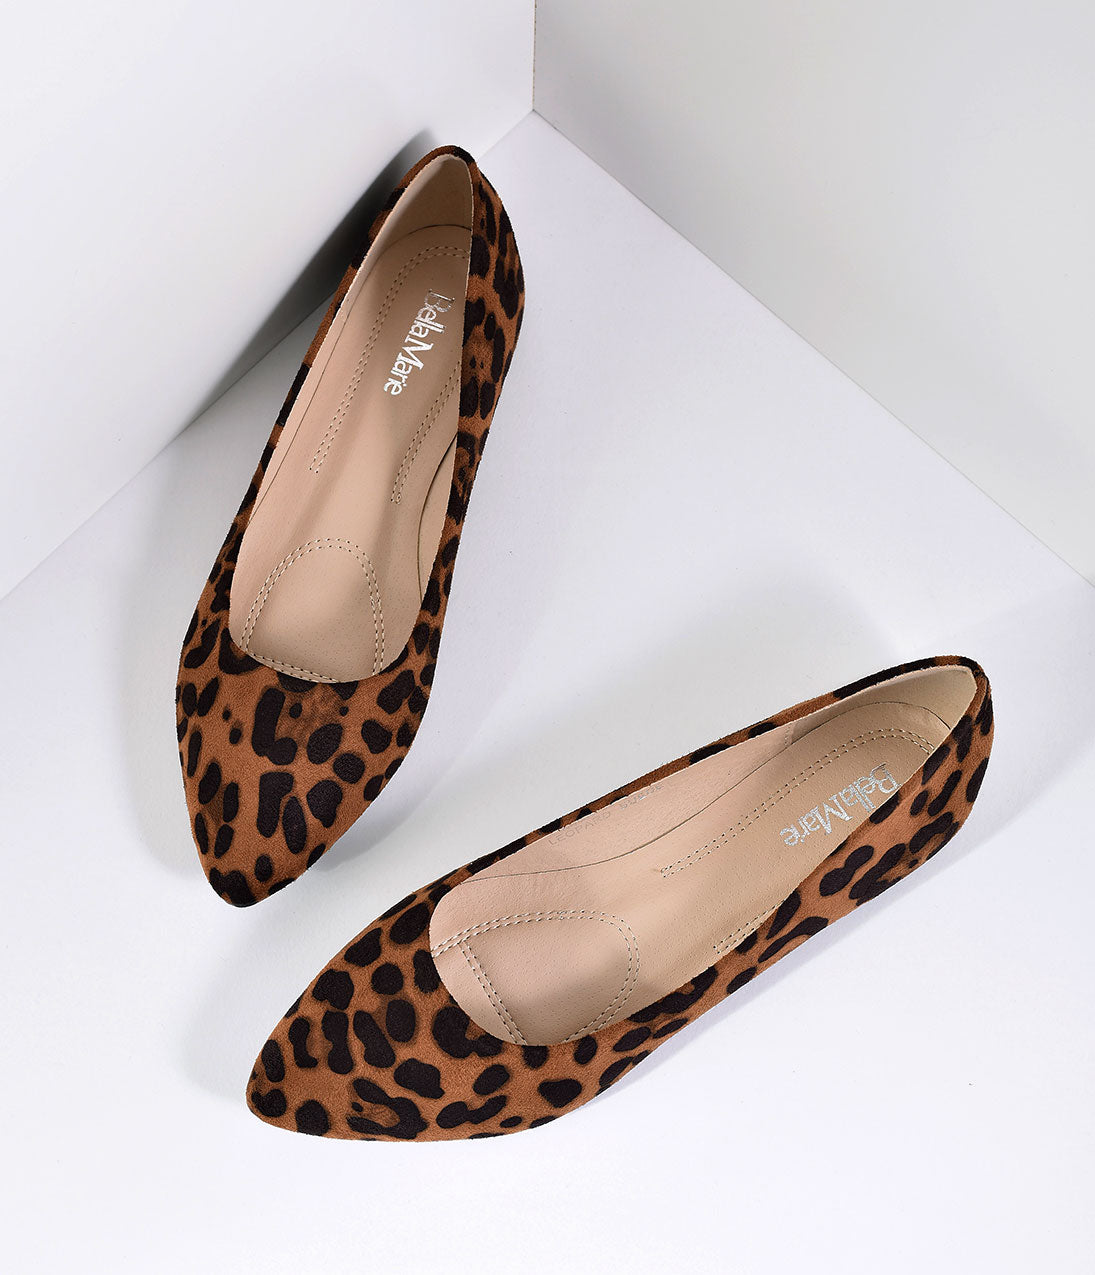 Pin Up Shoes- Heels, Pumps & Flats Leopard Print Suede Pointed Toe Flats $32.00 AT vintagedancer.com